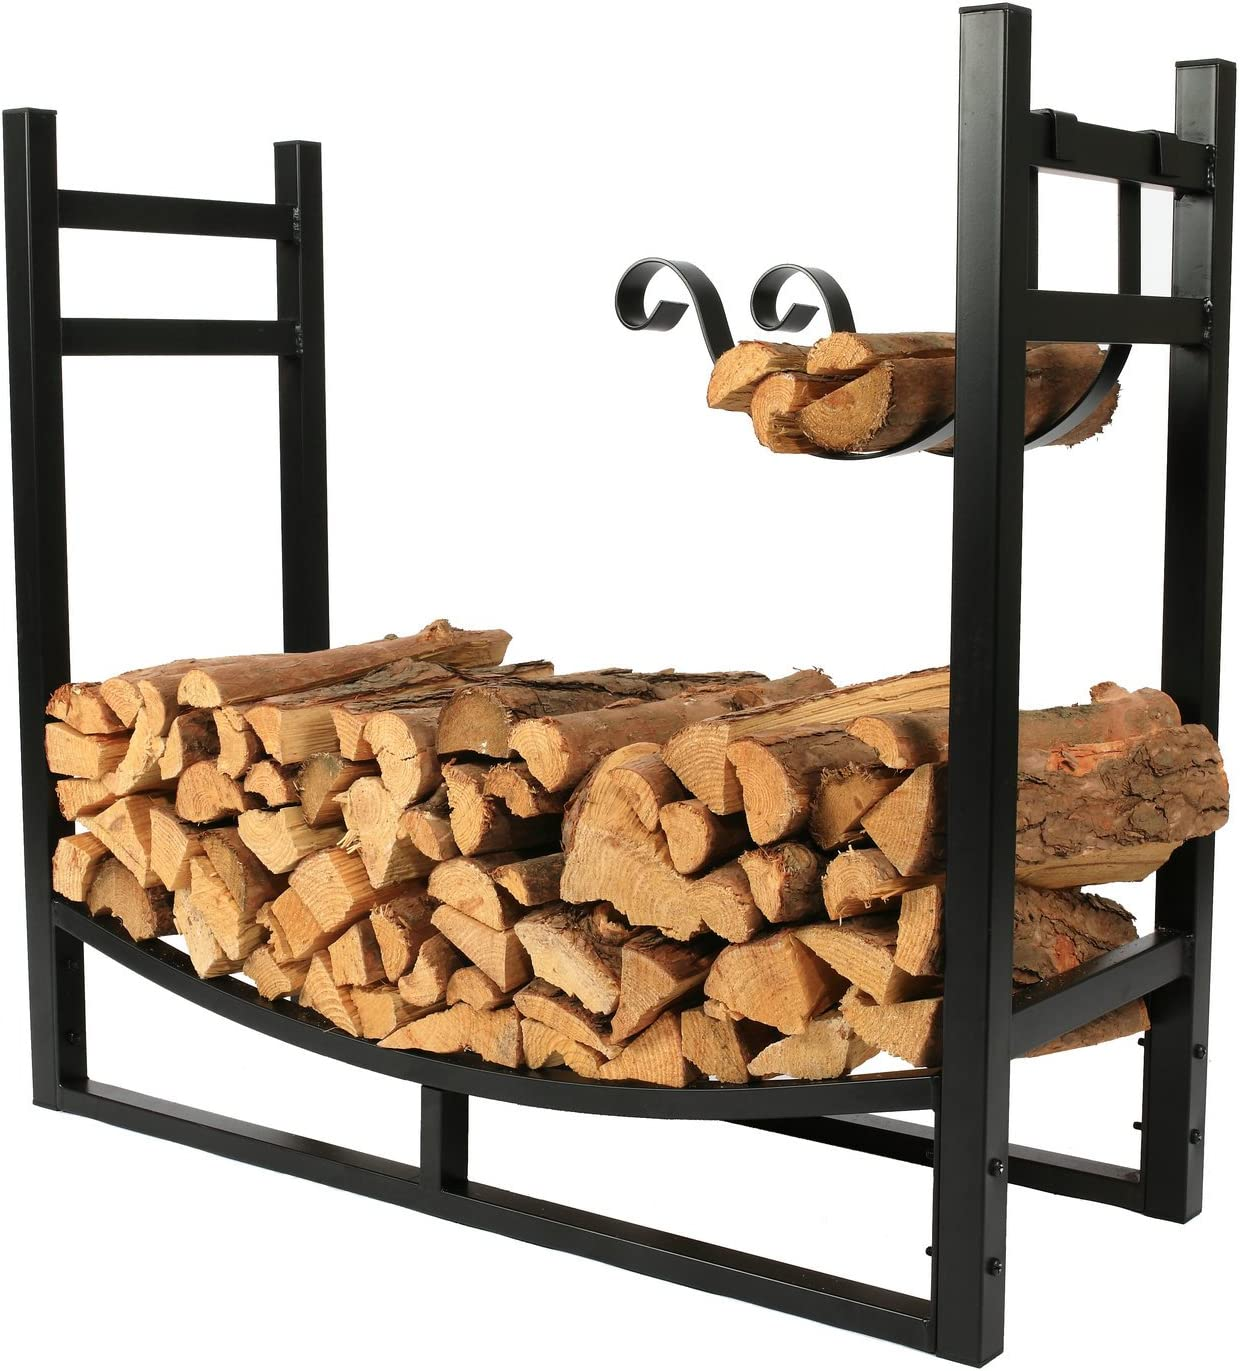 1. GO 3 Feet Indoor Outdoor Heavy Duty Firewood Log Rack with Wood Holder, 30 Inch Tall